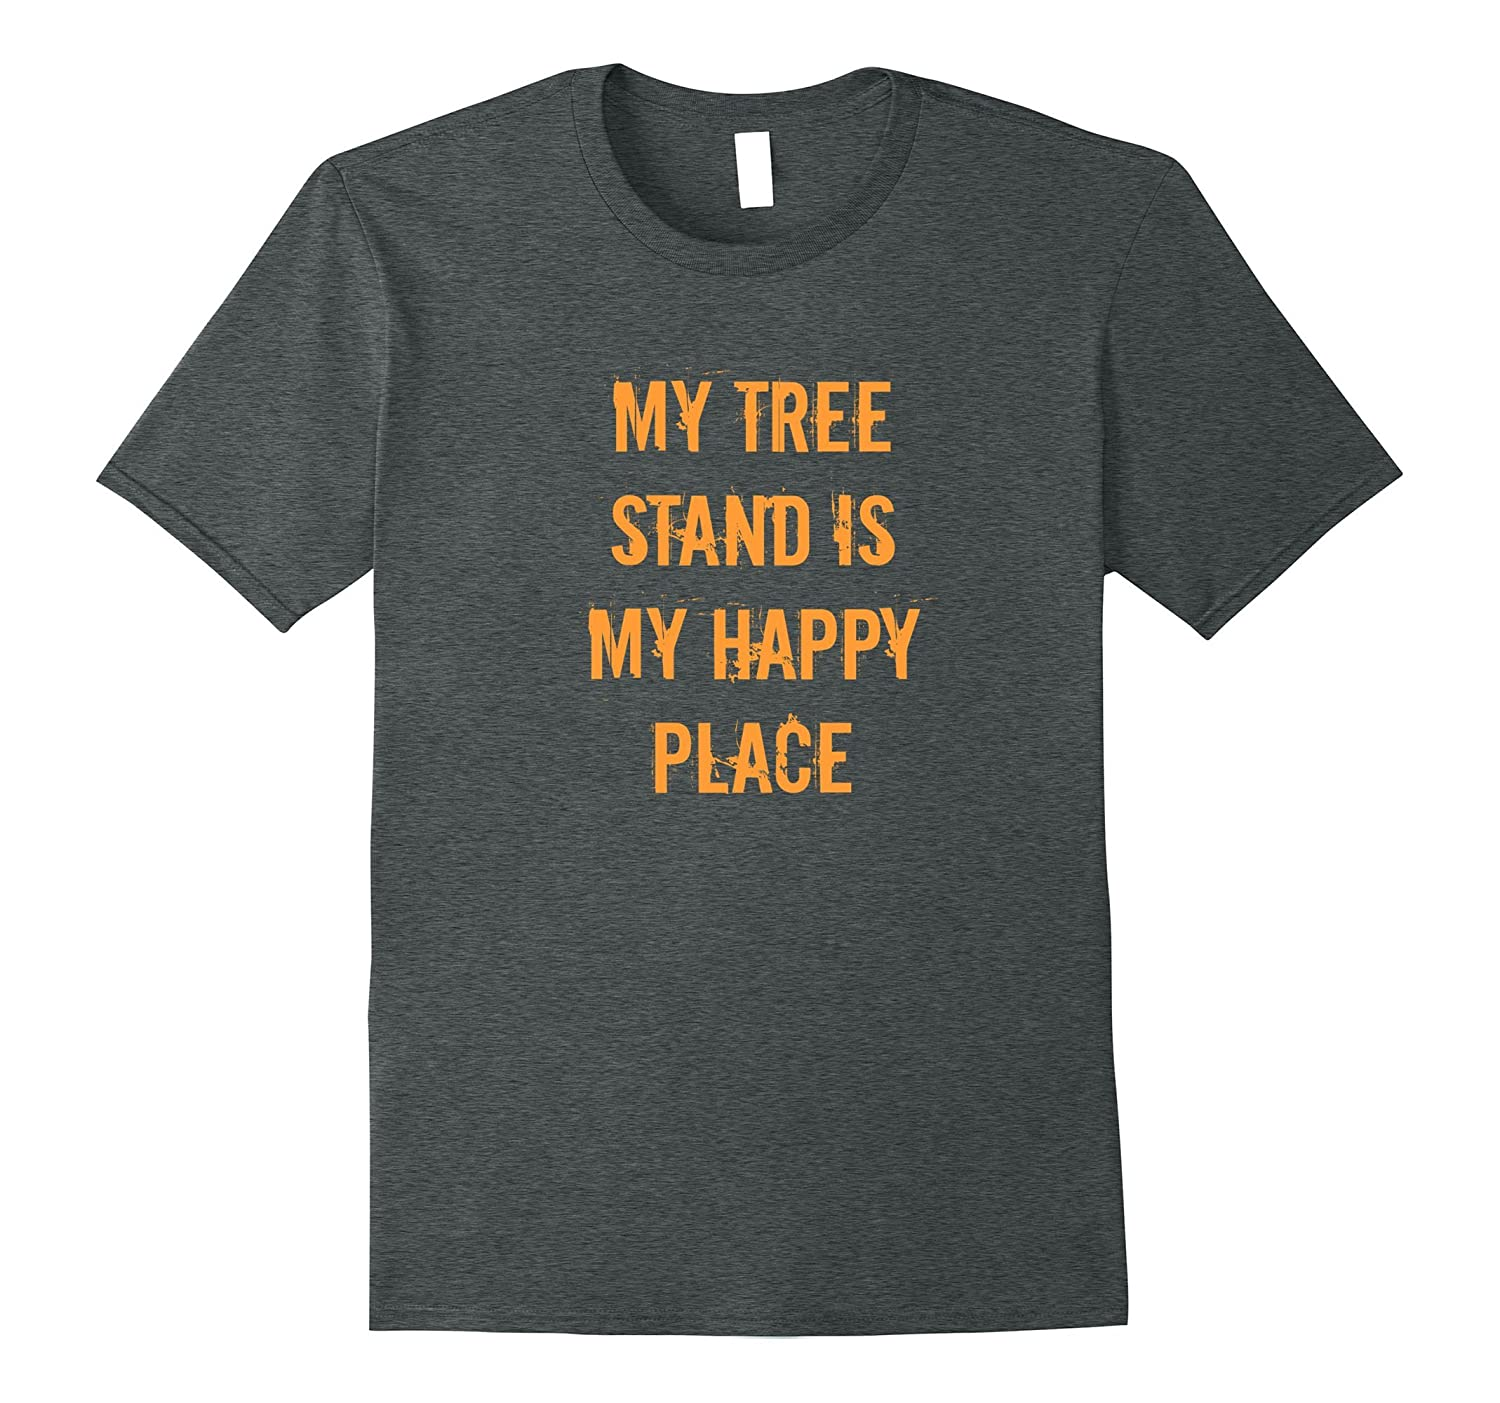 My Tree Stand is my Happy Place Deer Hunting T-Shirt-4LVS